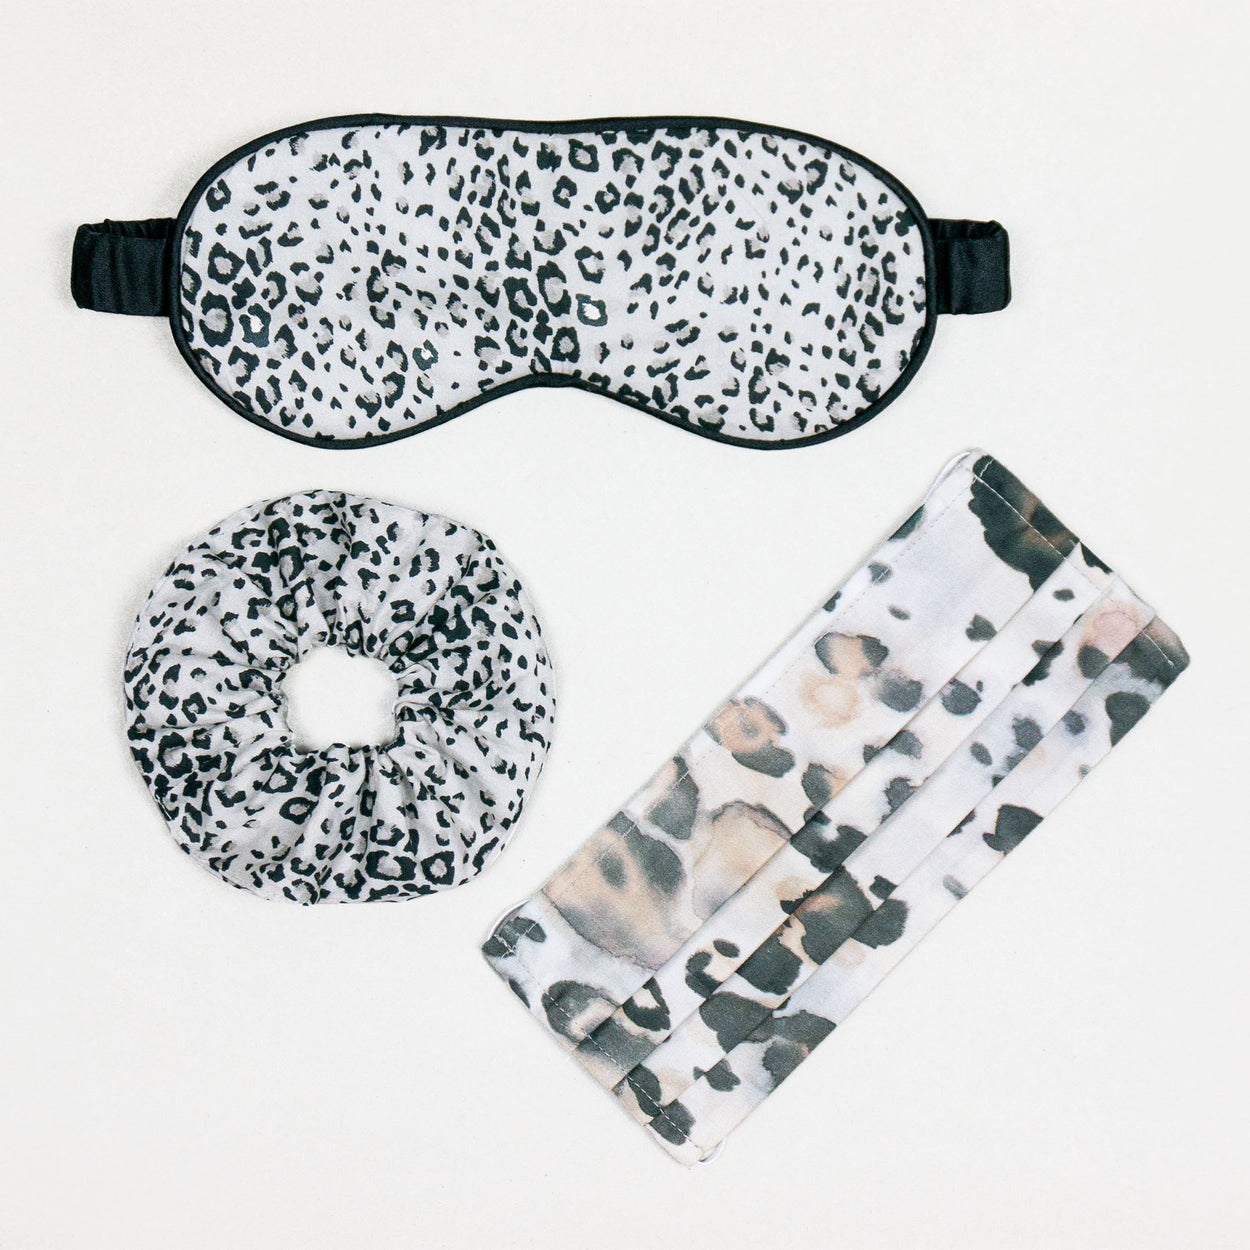 happyLittleThings - Accessories passend zum Stil der Maske